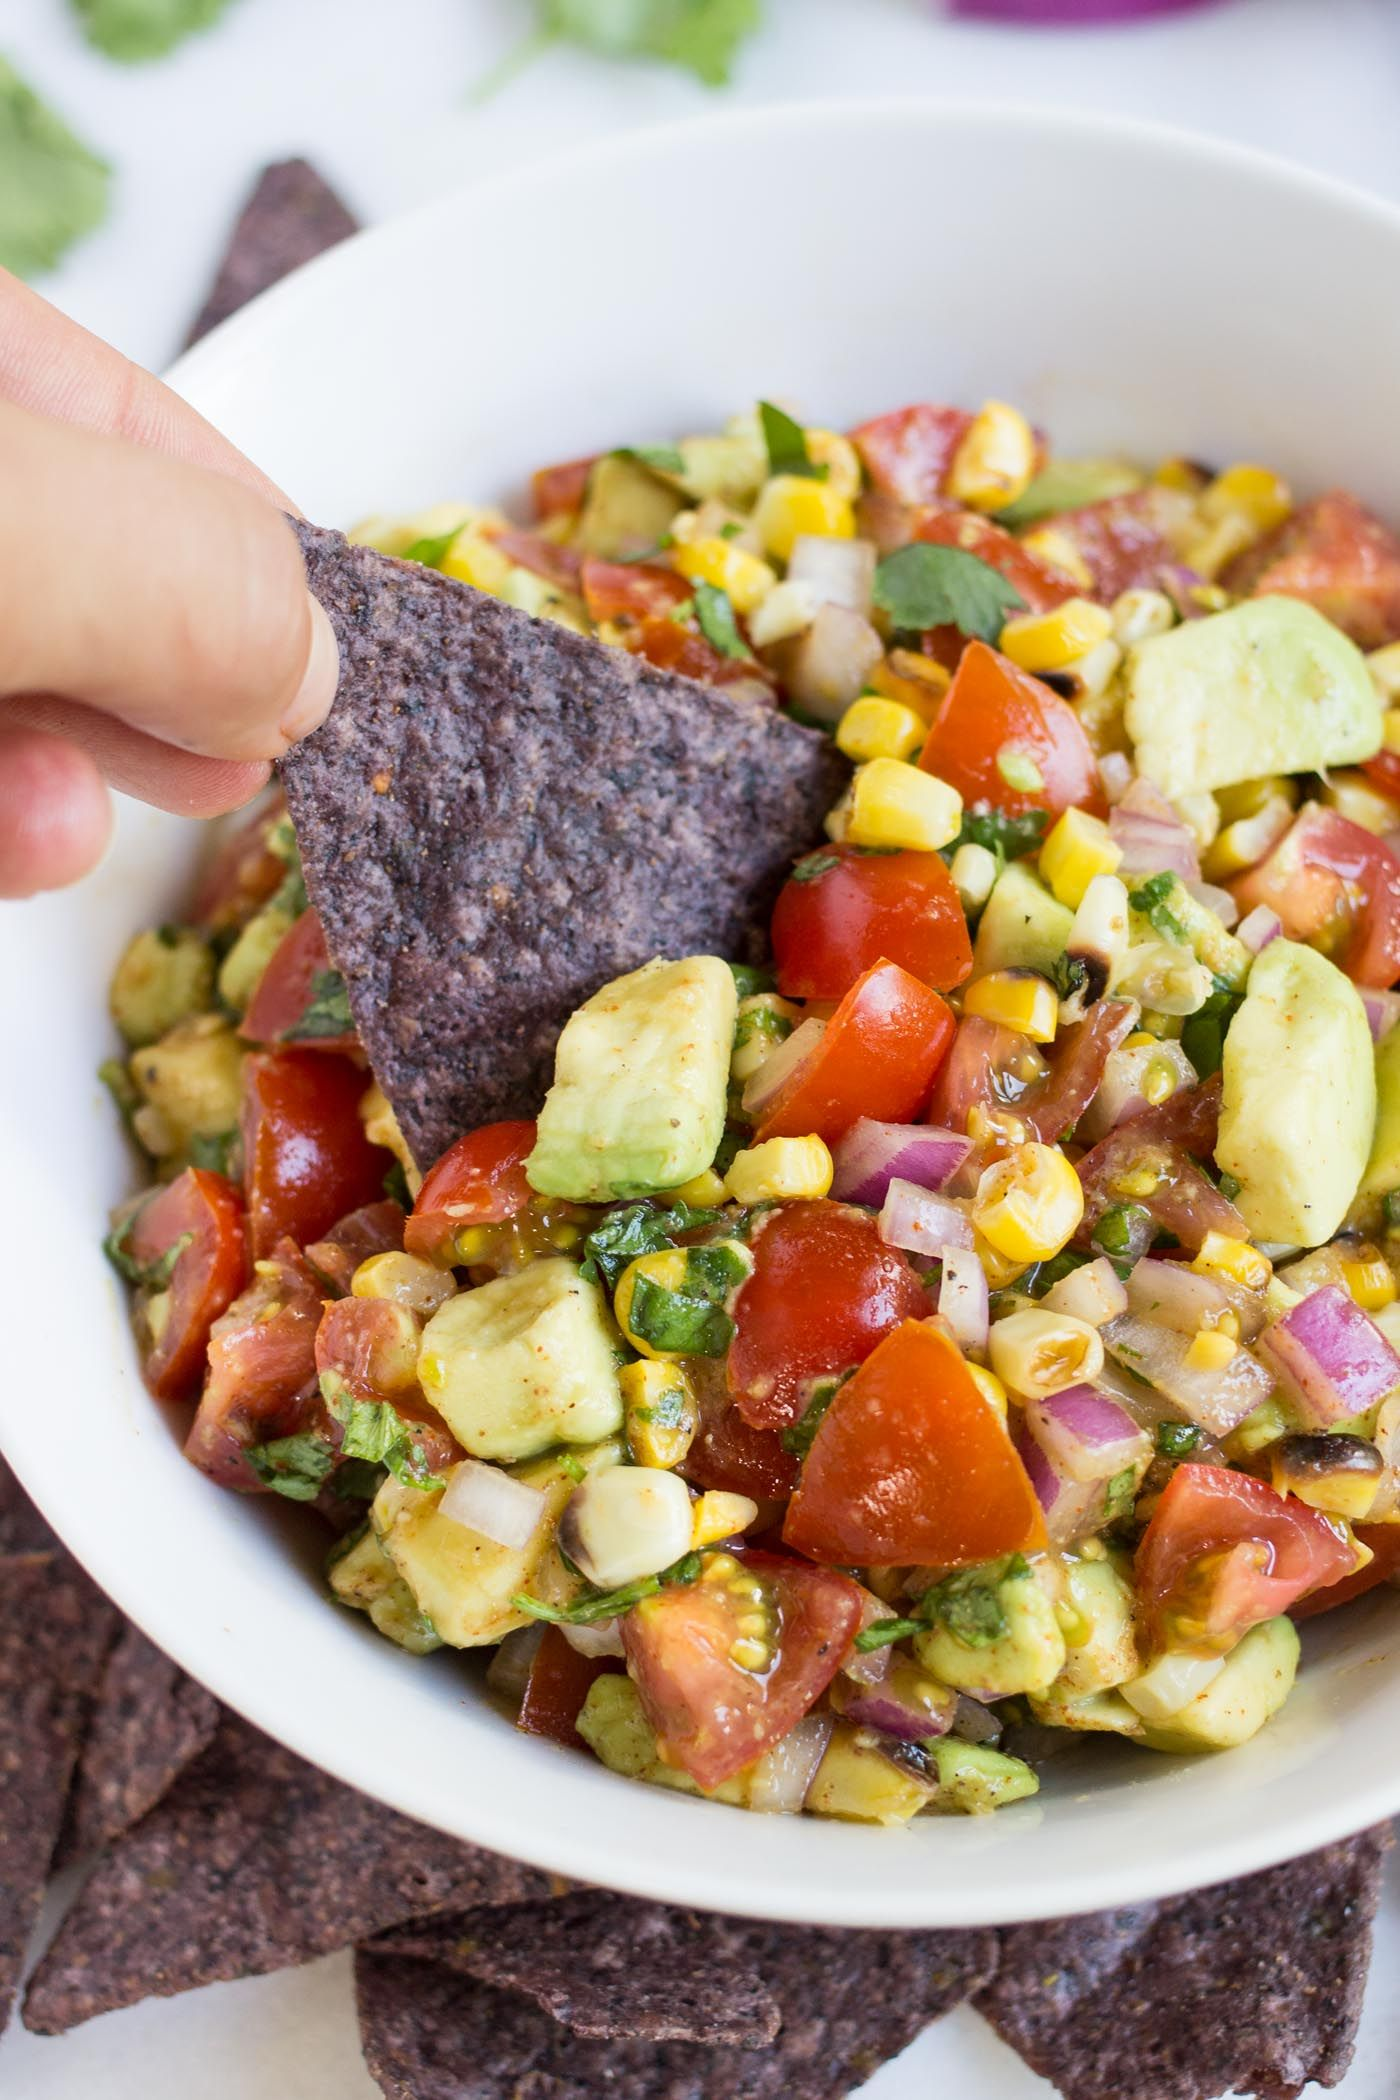 The BEST summer dip >> Grilled Corn   Avocado Salsa! healthy, easy and SO FLAVORFUL!